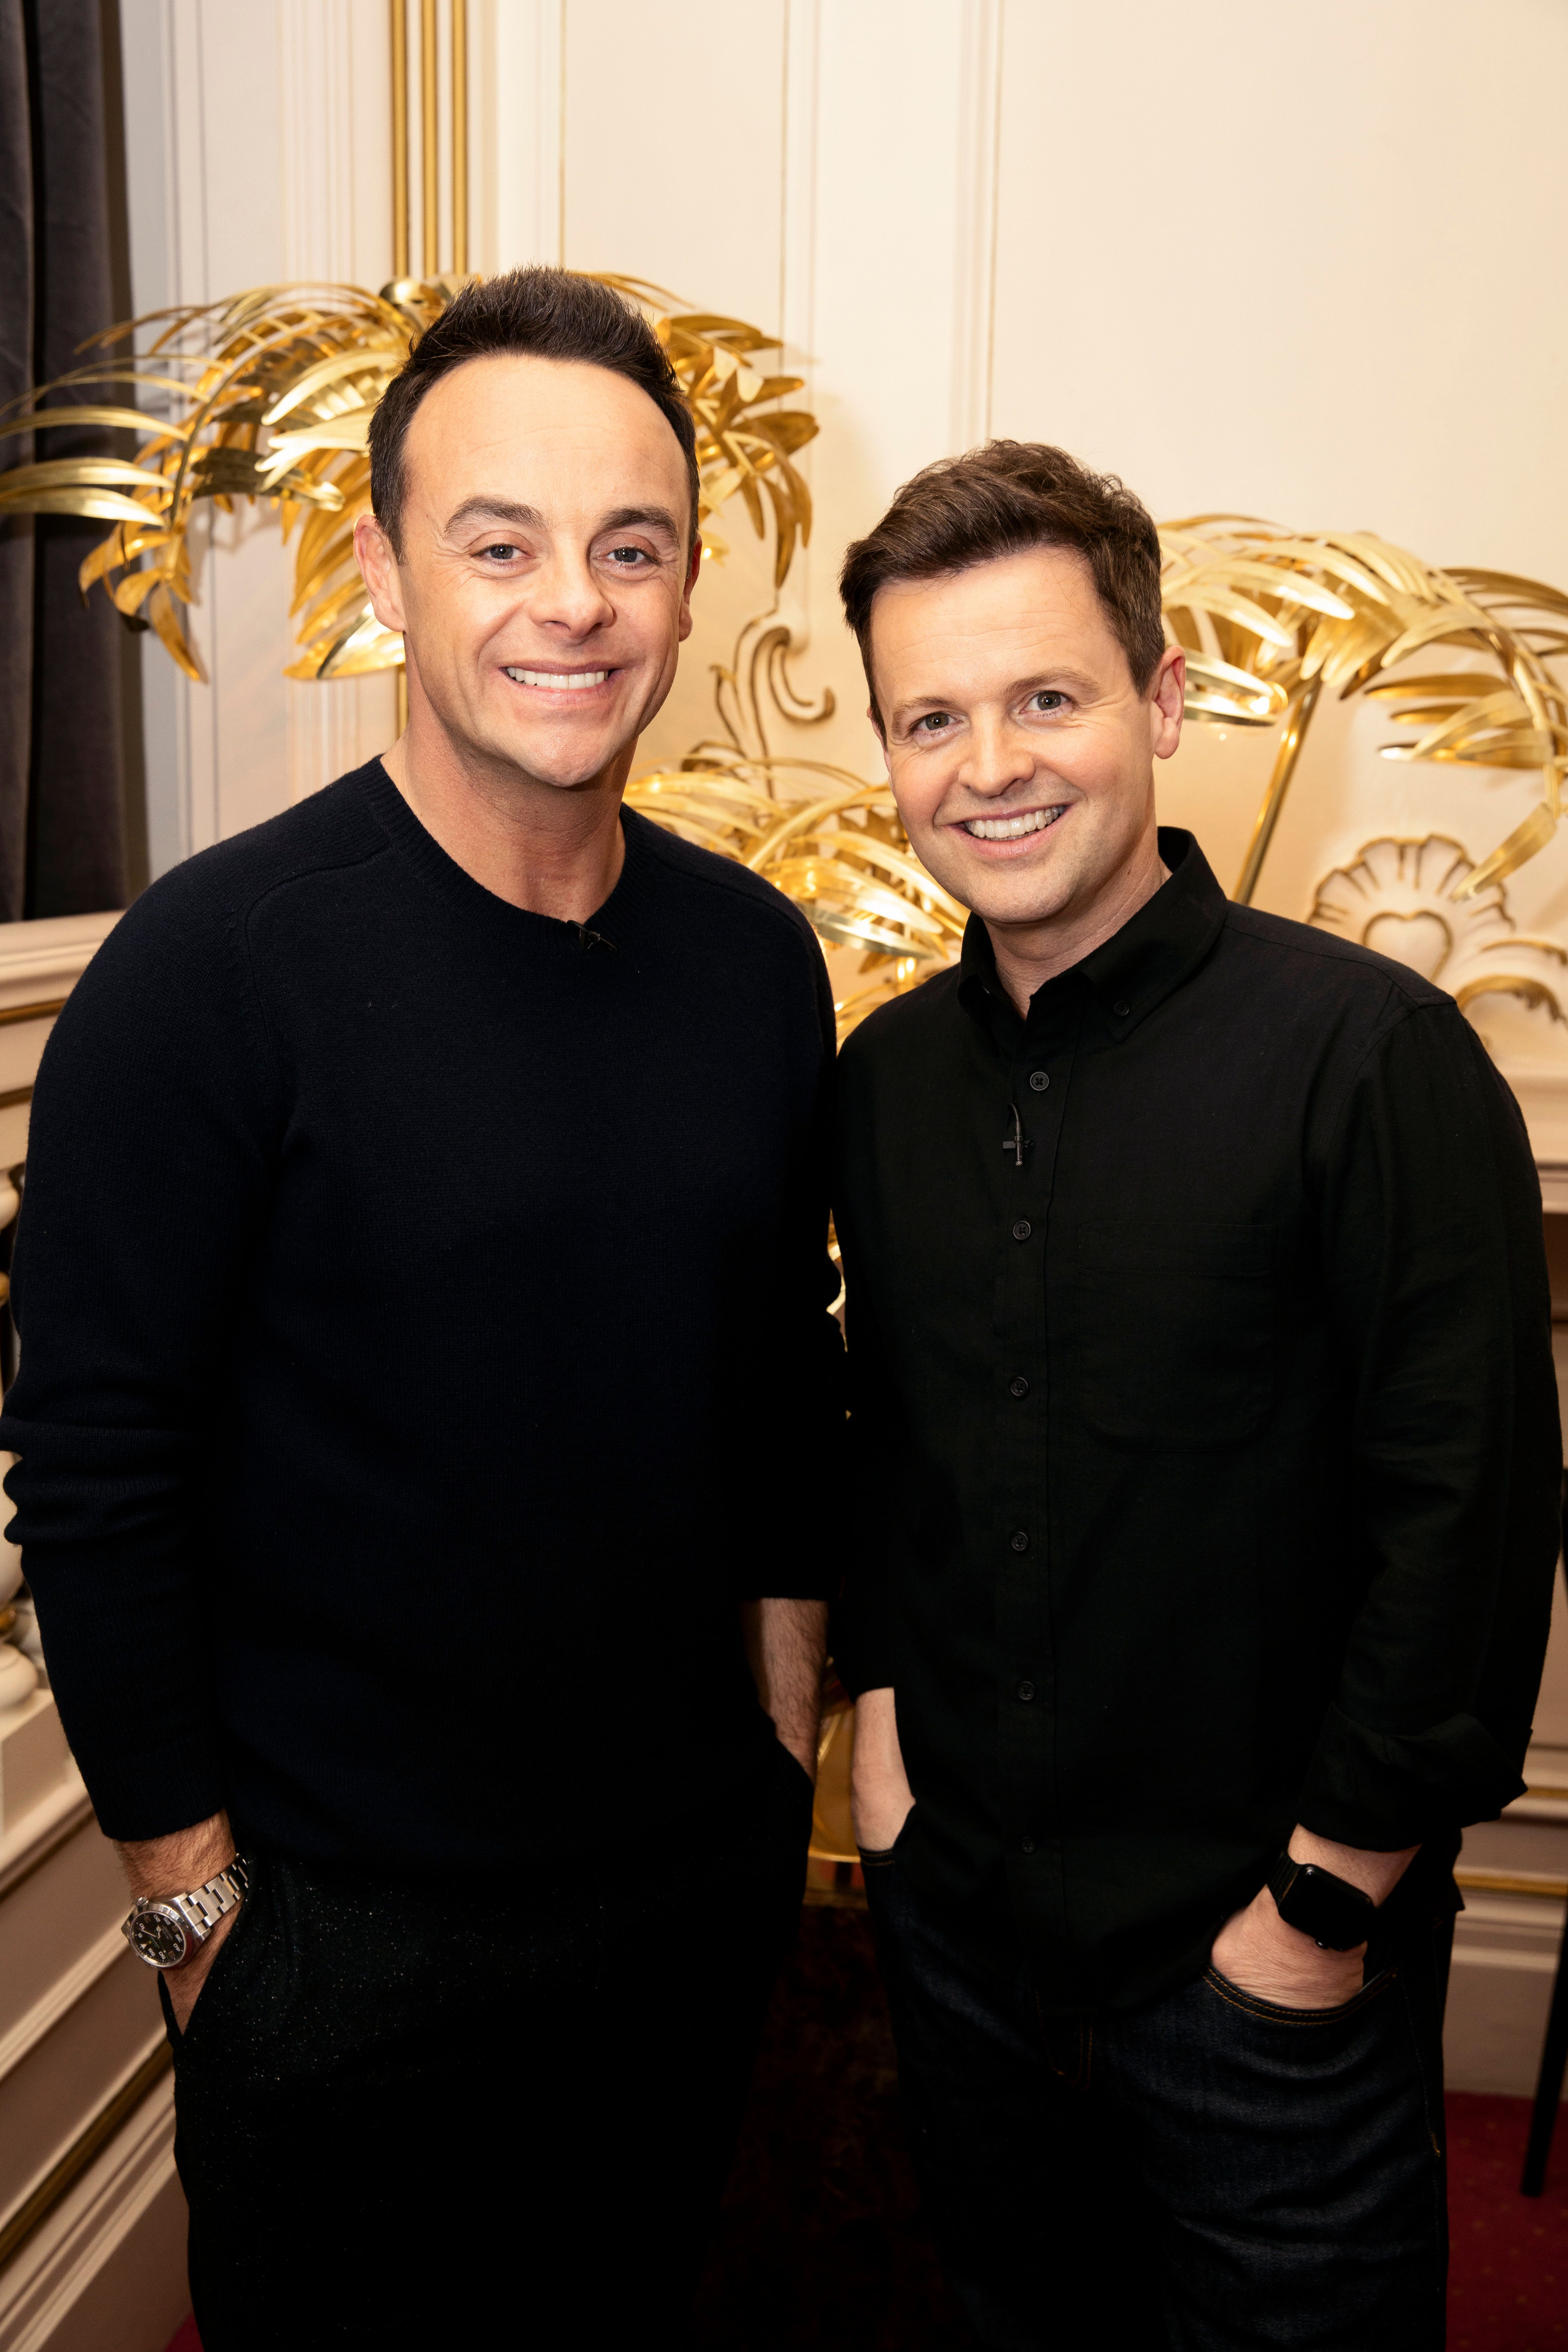 Ant McPartlin Makes Emotional Return To 'Britain's Got Talent', As He's Reunited With